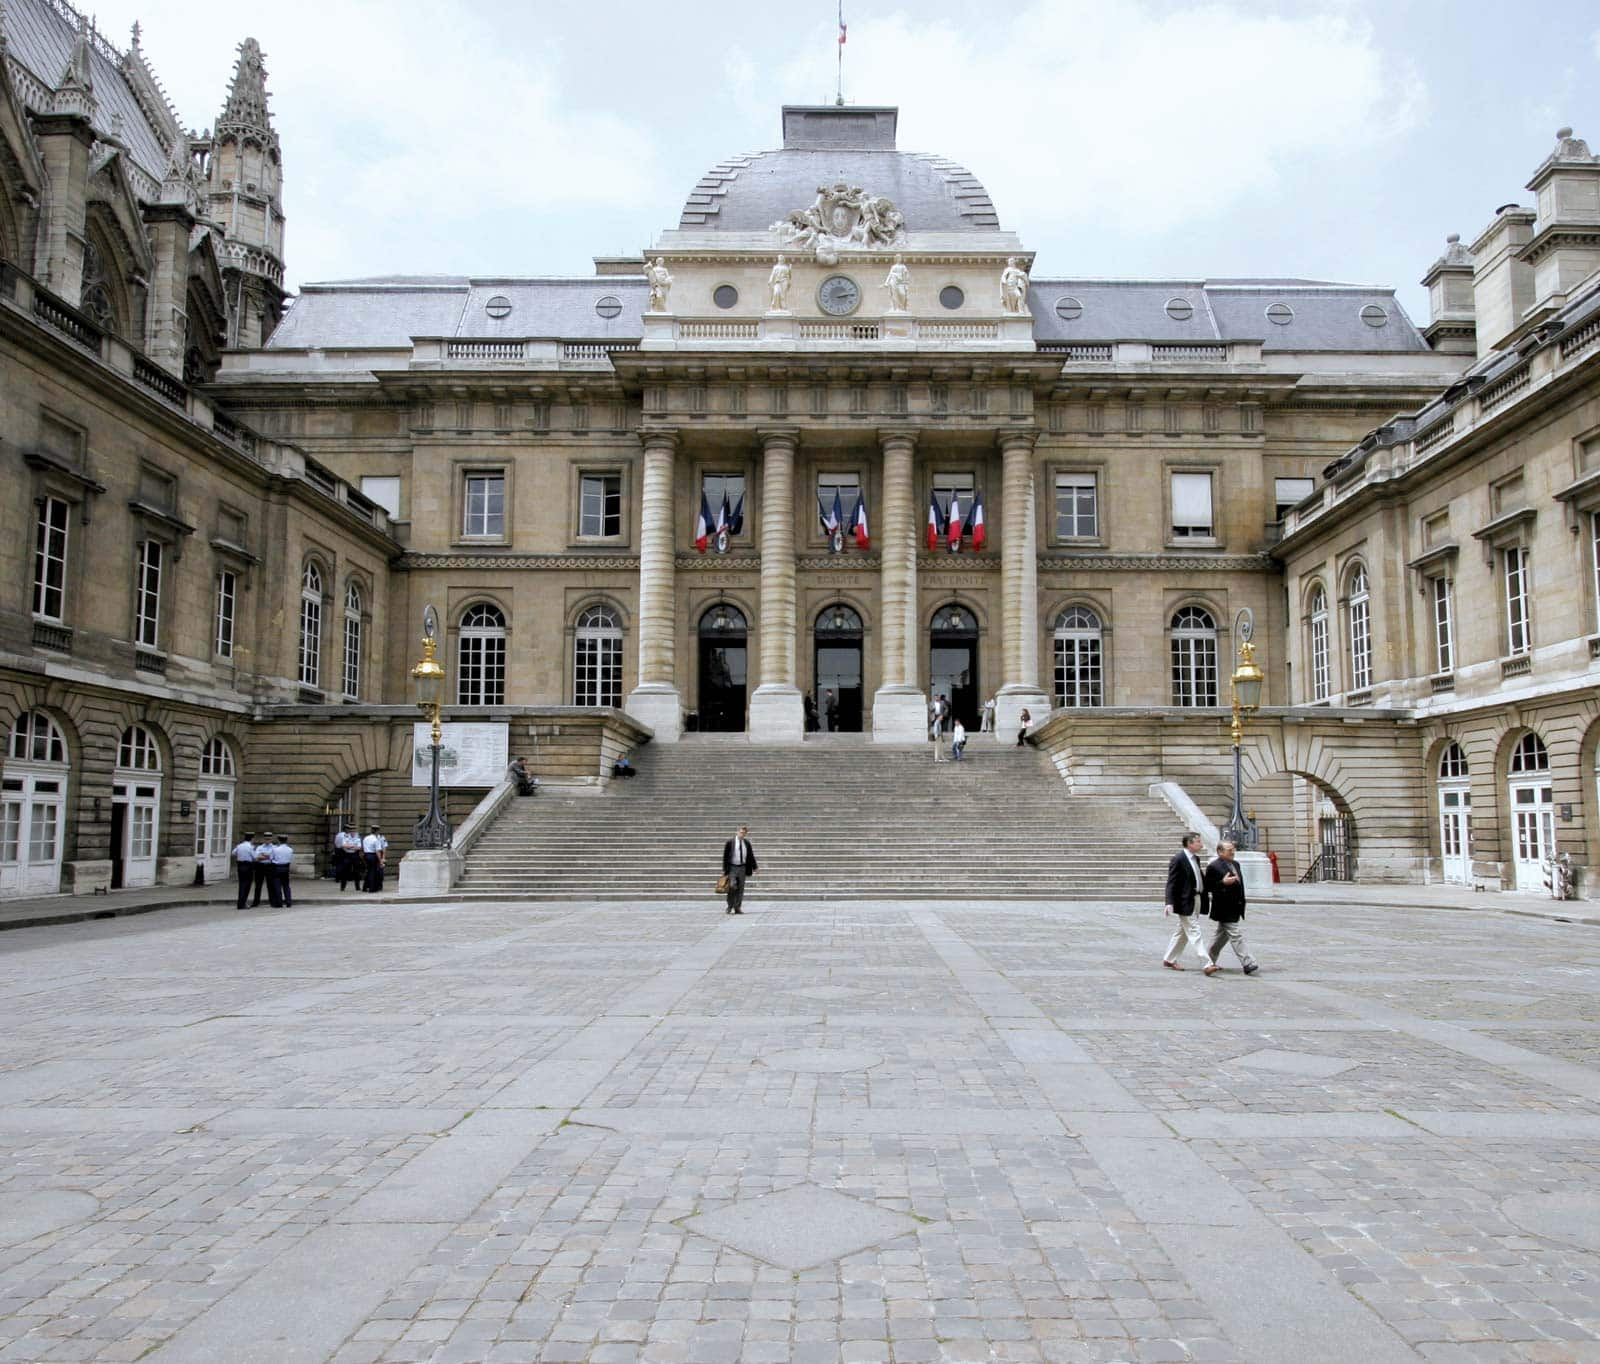 The Court of Cassation is the highest court in the French judiciary. Civil, commercial, social or criminal cases are first ruled upon by courts of first instance